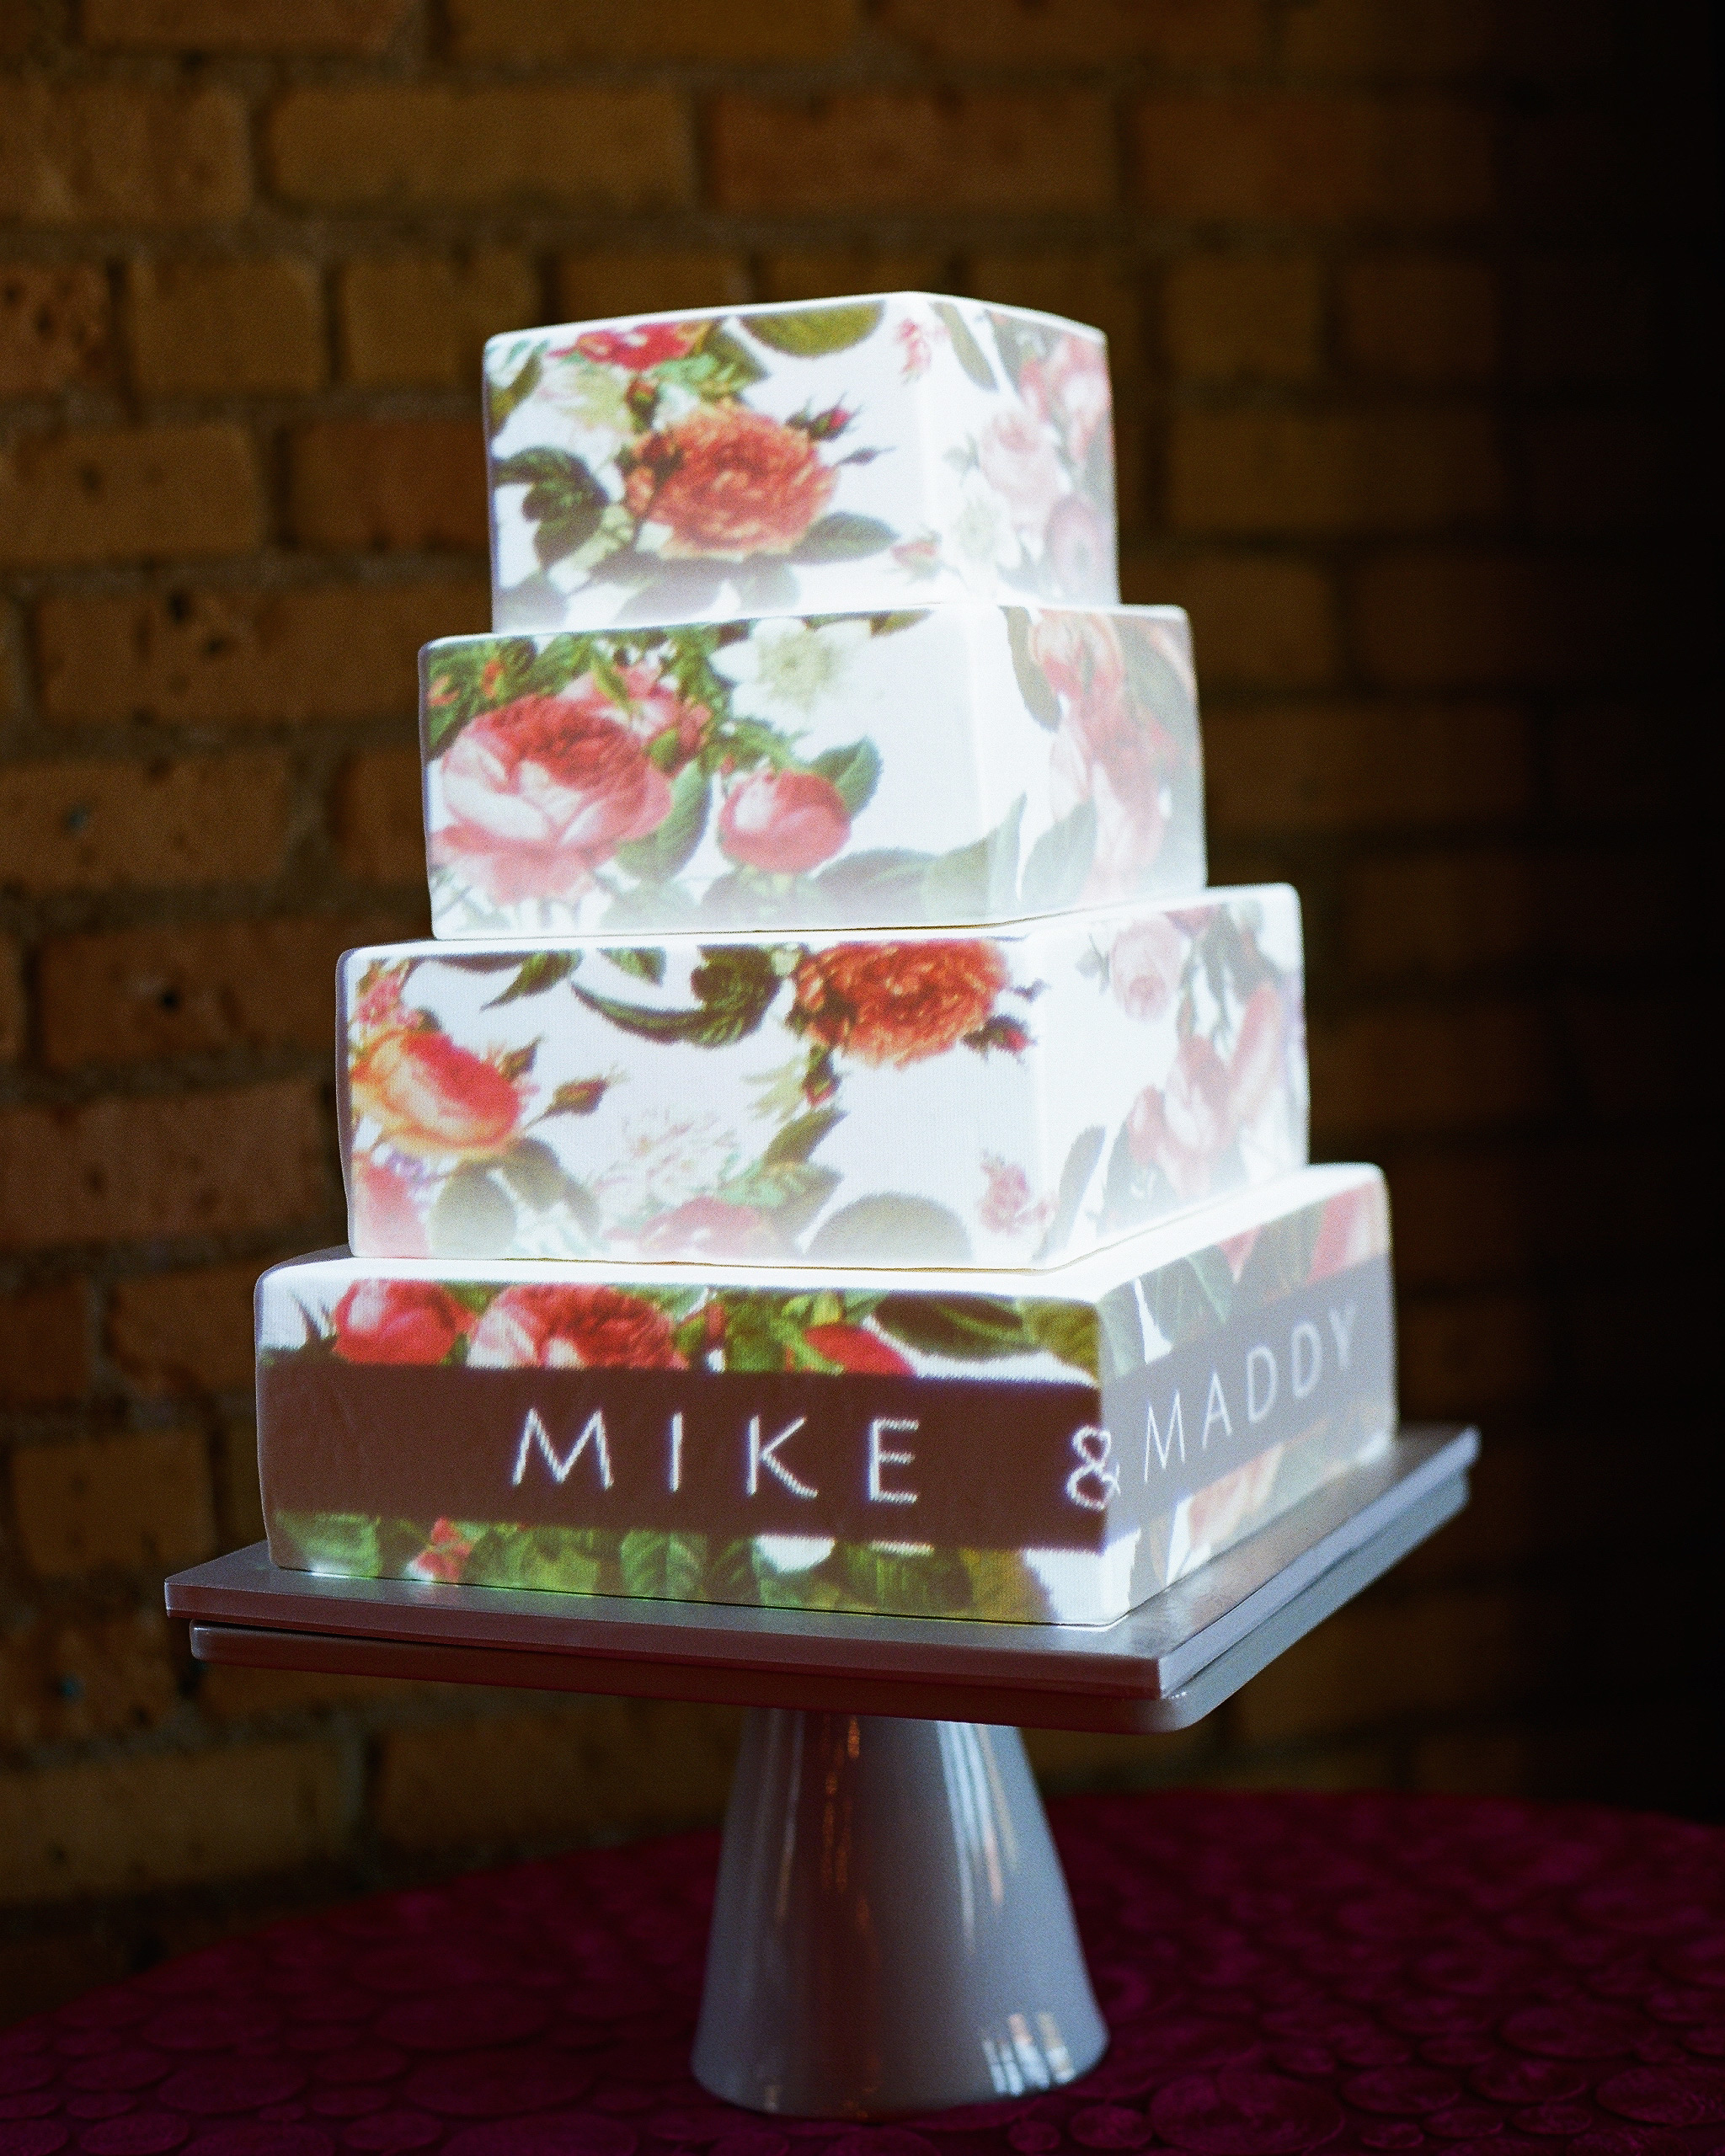 maddy-mike-wedding-cake-883.9767.12.2015.49-6134174-0716.jpg